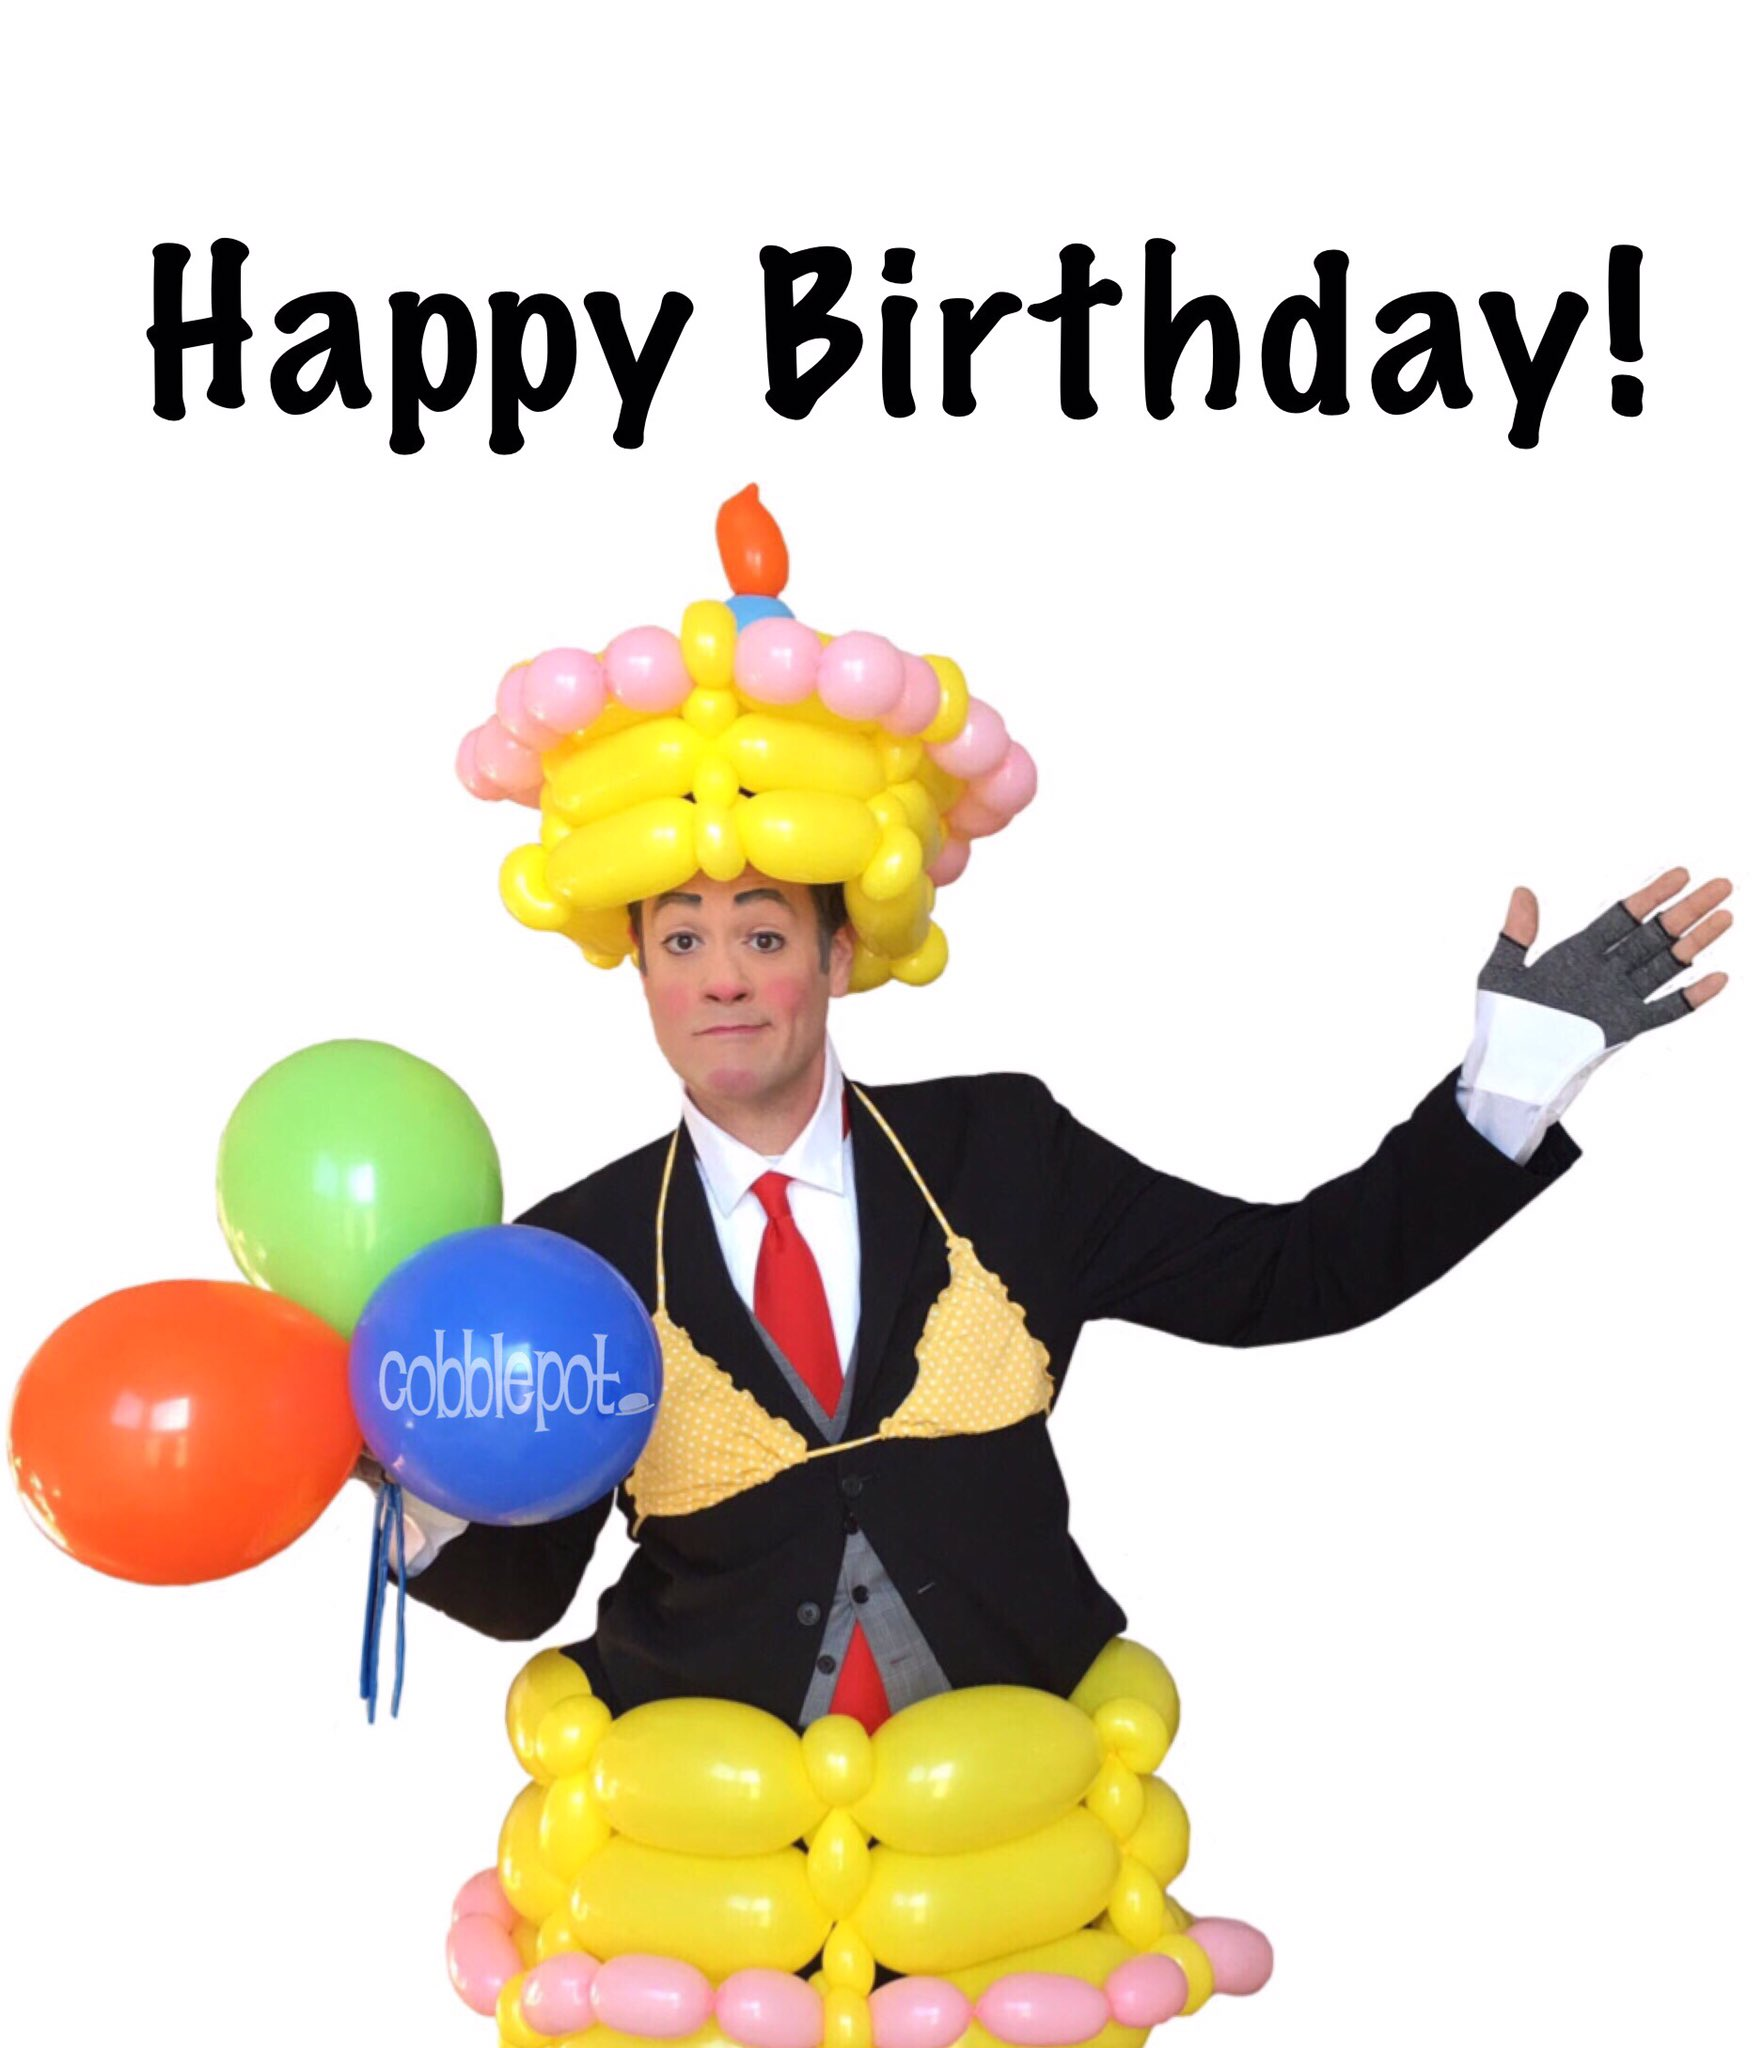 Happy birthday to one of the funniest people I\ve ever witnessed, Captain Fatbelly himself,